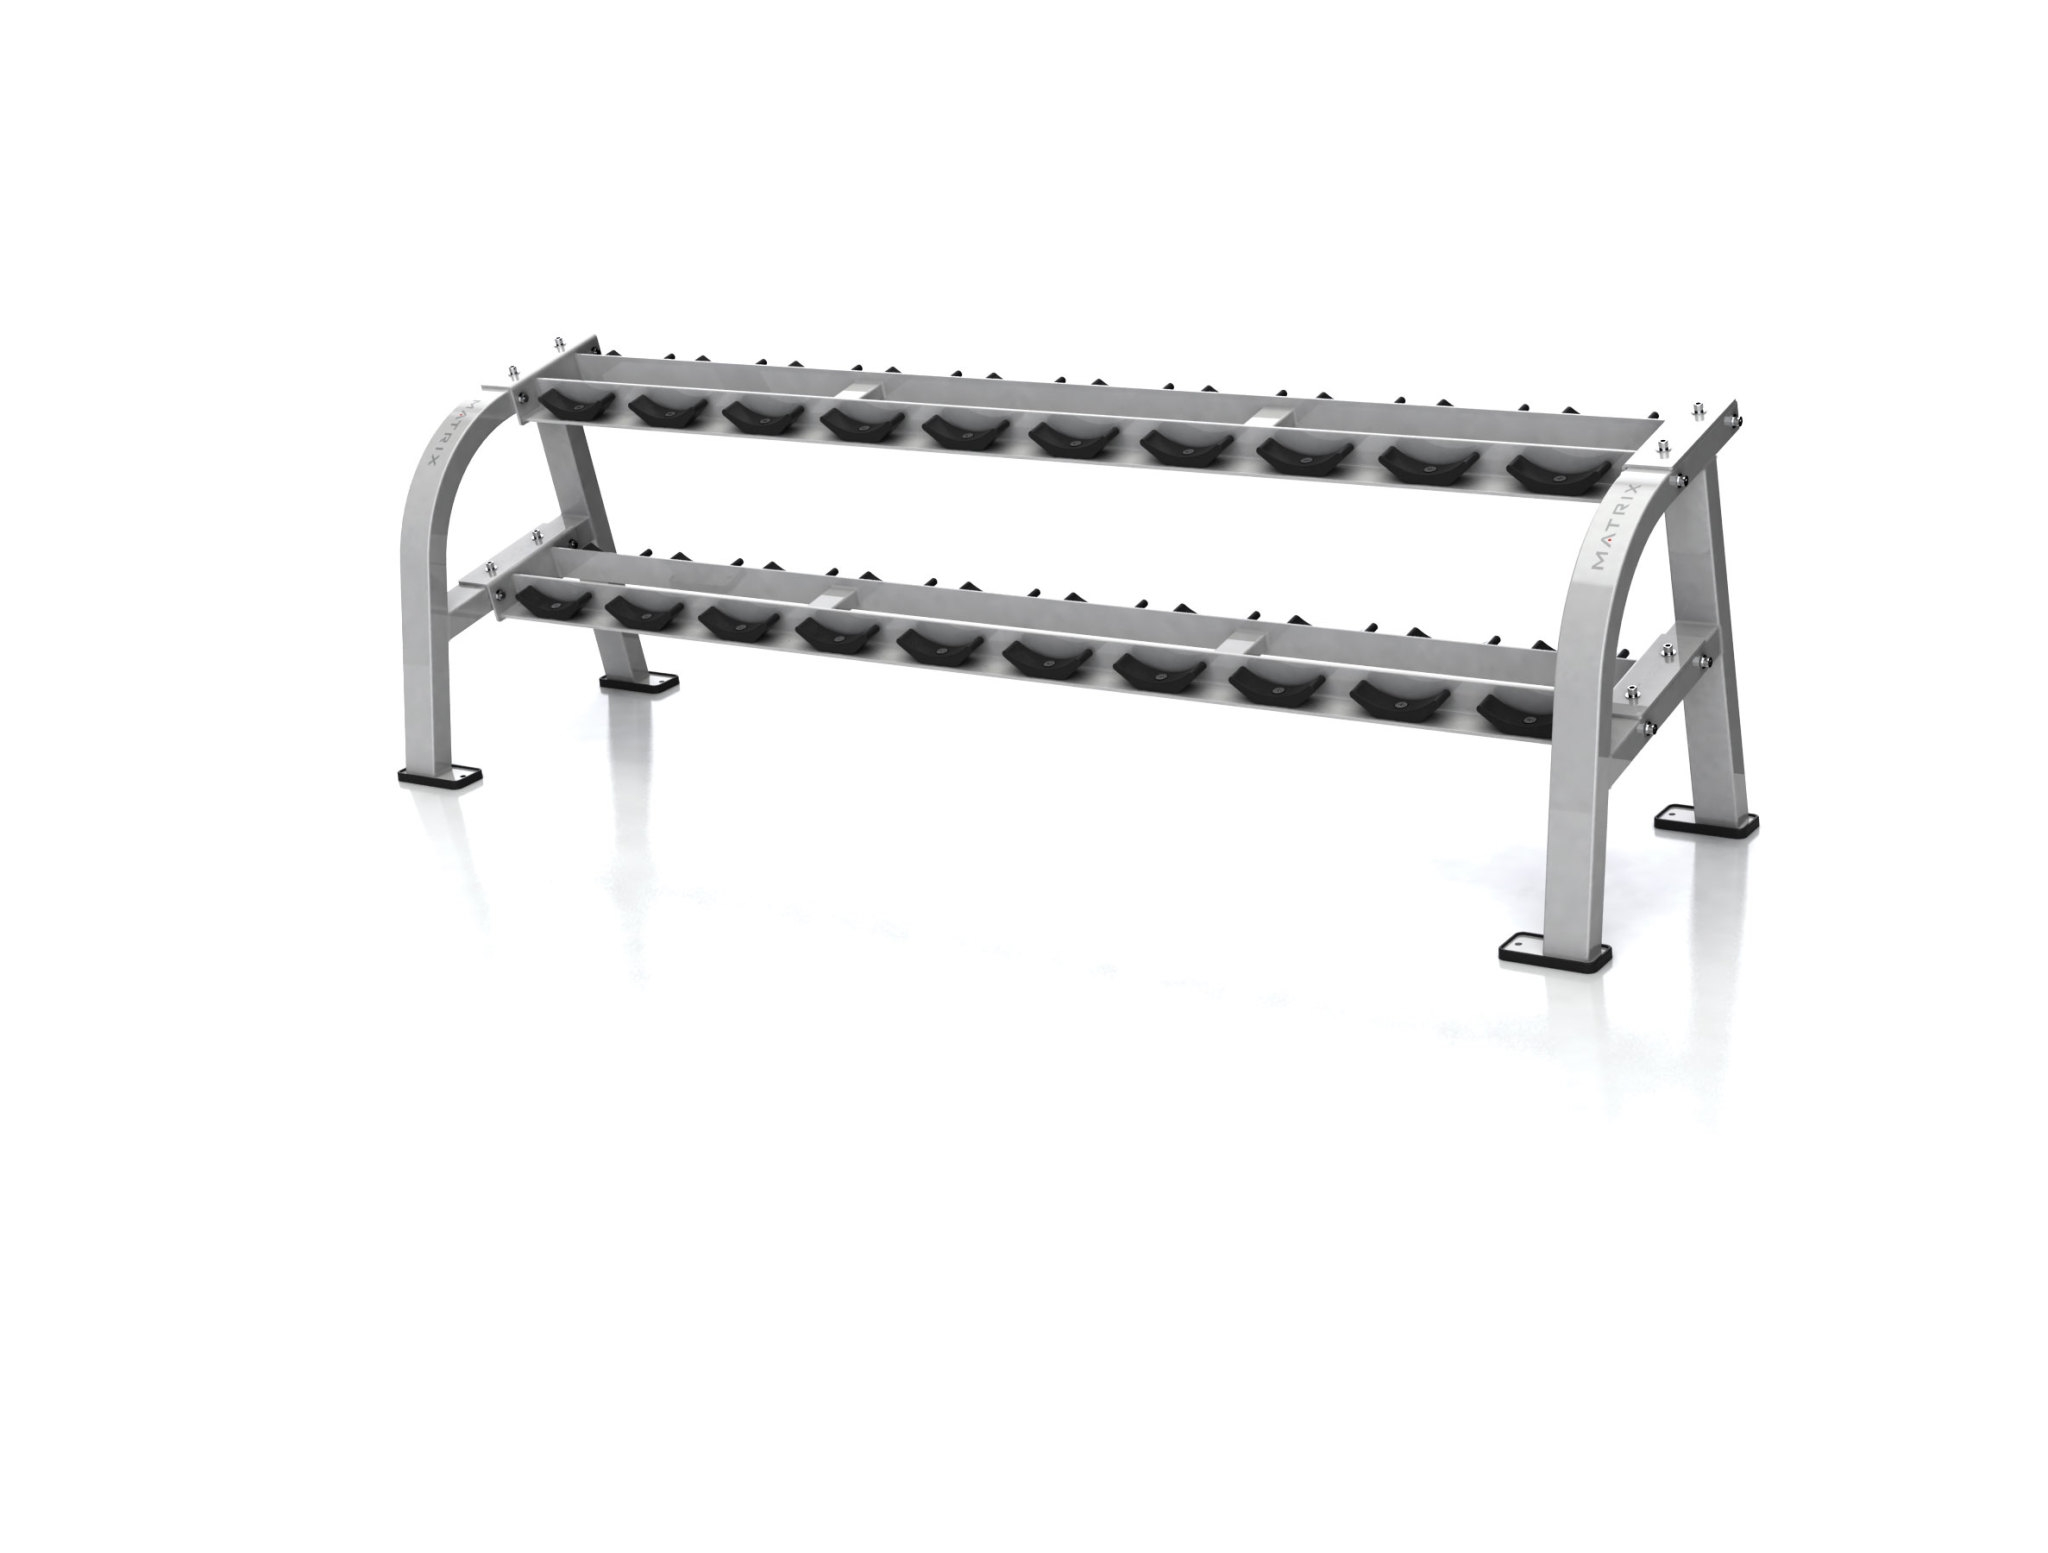 10-Pair Dumbbell Rack